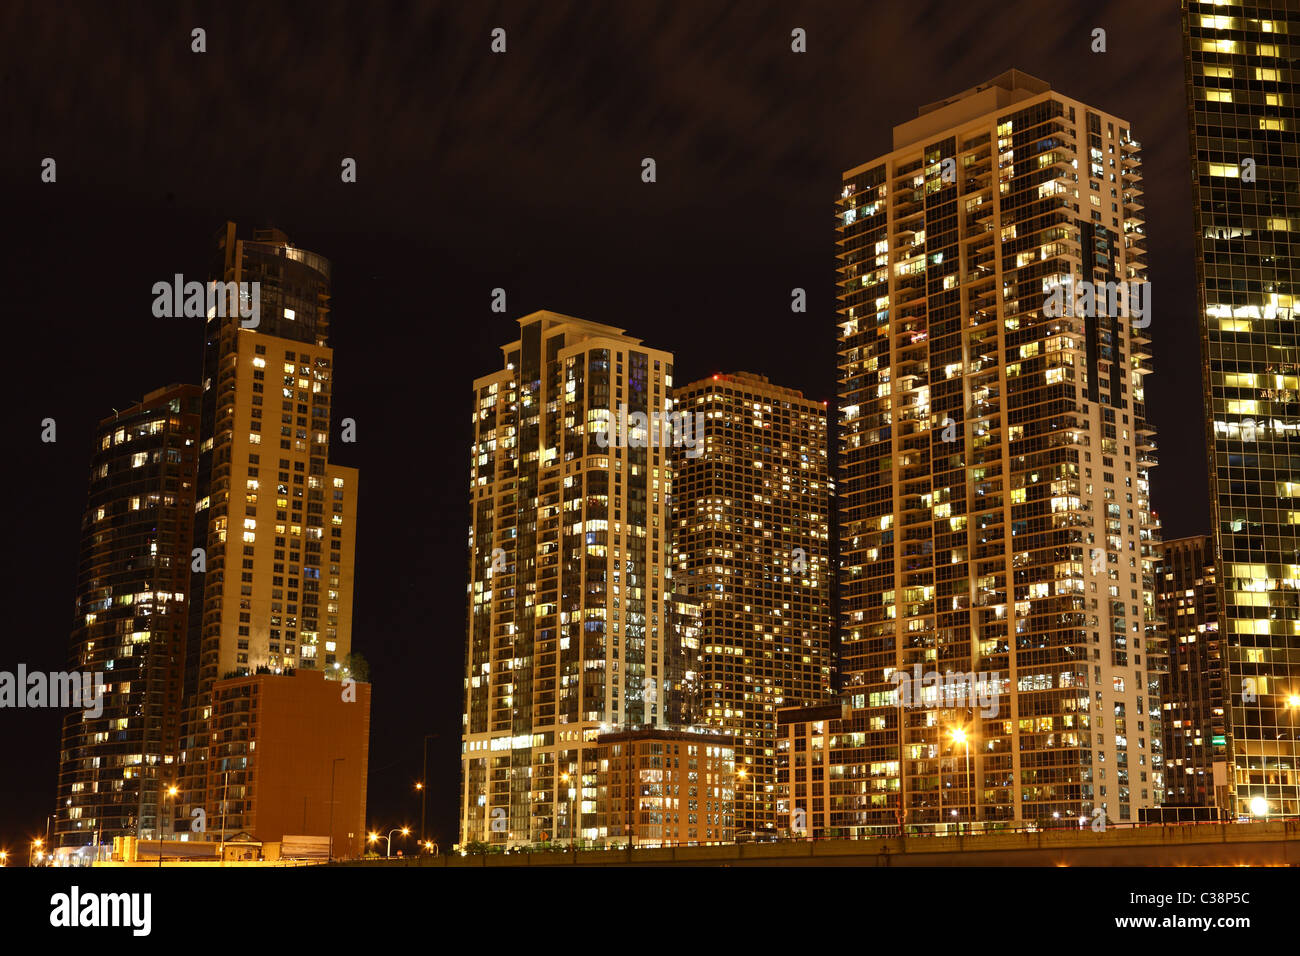 Downtown Chicago / USA at night - Stock Image